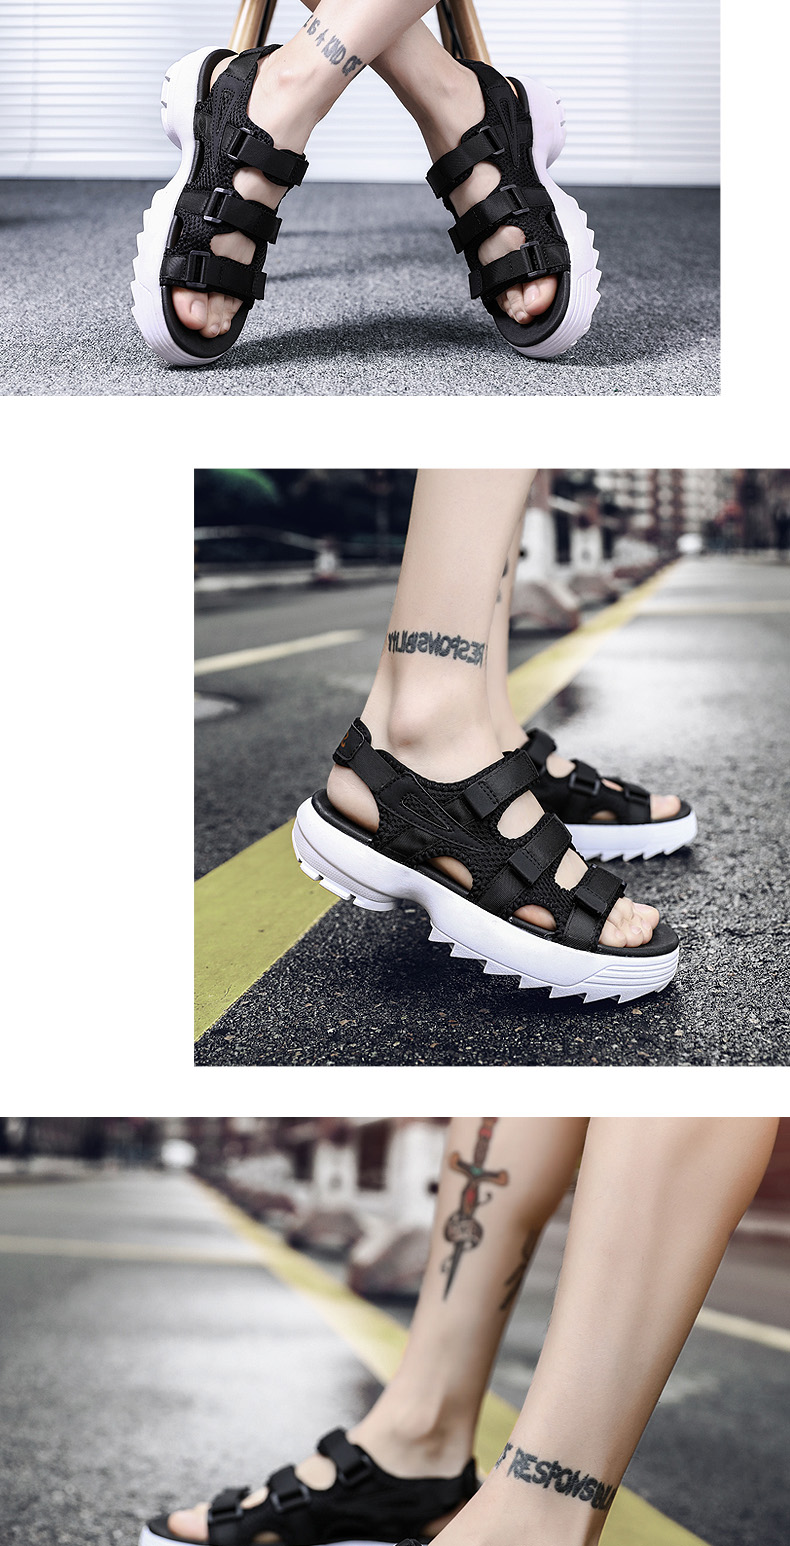 Sandals Men's Beach Shoes Summer Sports Korean Version Of The Trend Increase Big Sandals And Slippers Summer Boys Tide 14 Online shopping Bangladesh